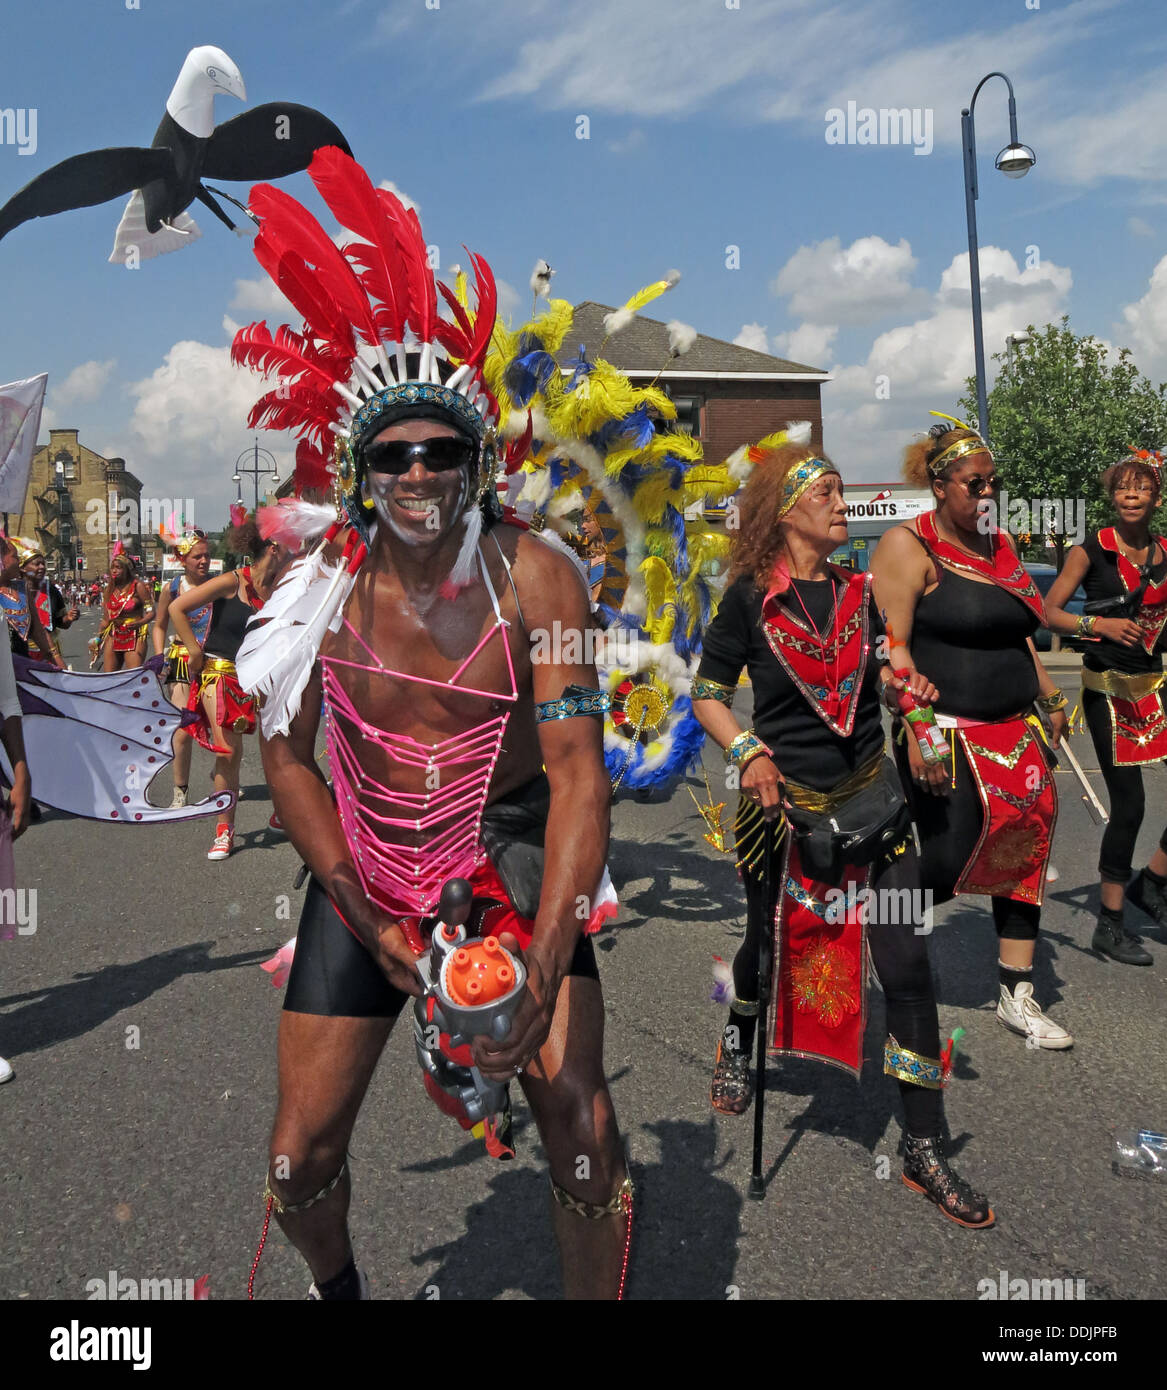 Costumed dancers in red from Huddersfield Carnival 2013 African Caribbean parade street party - Stock Image